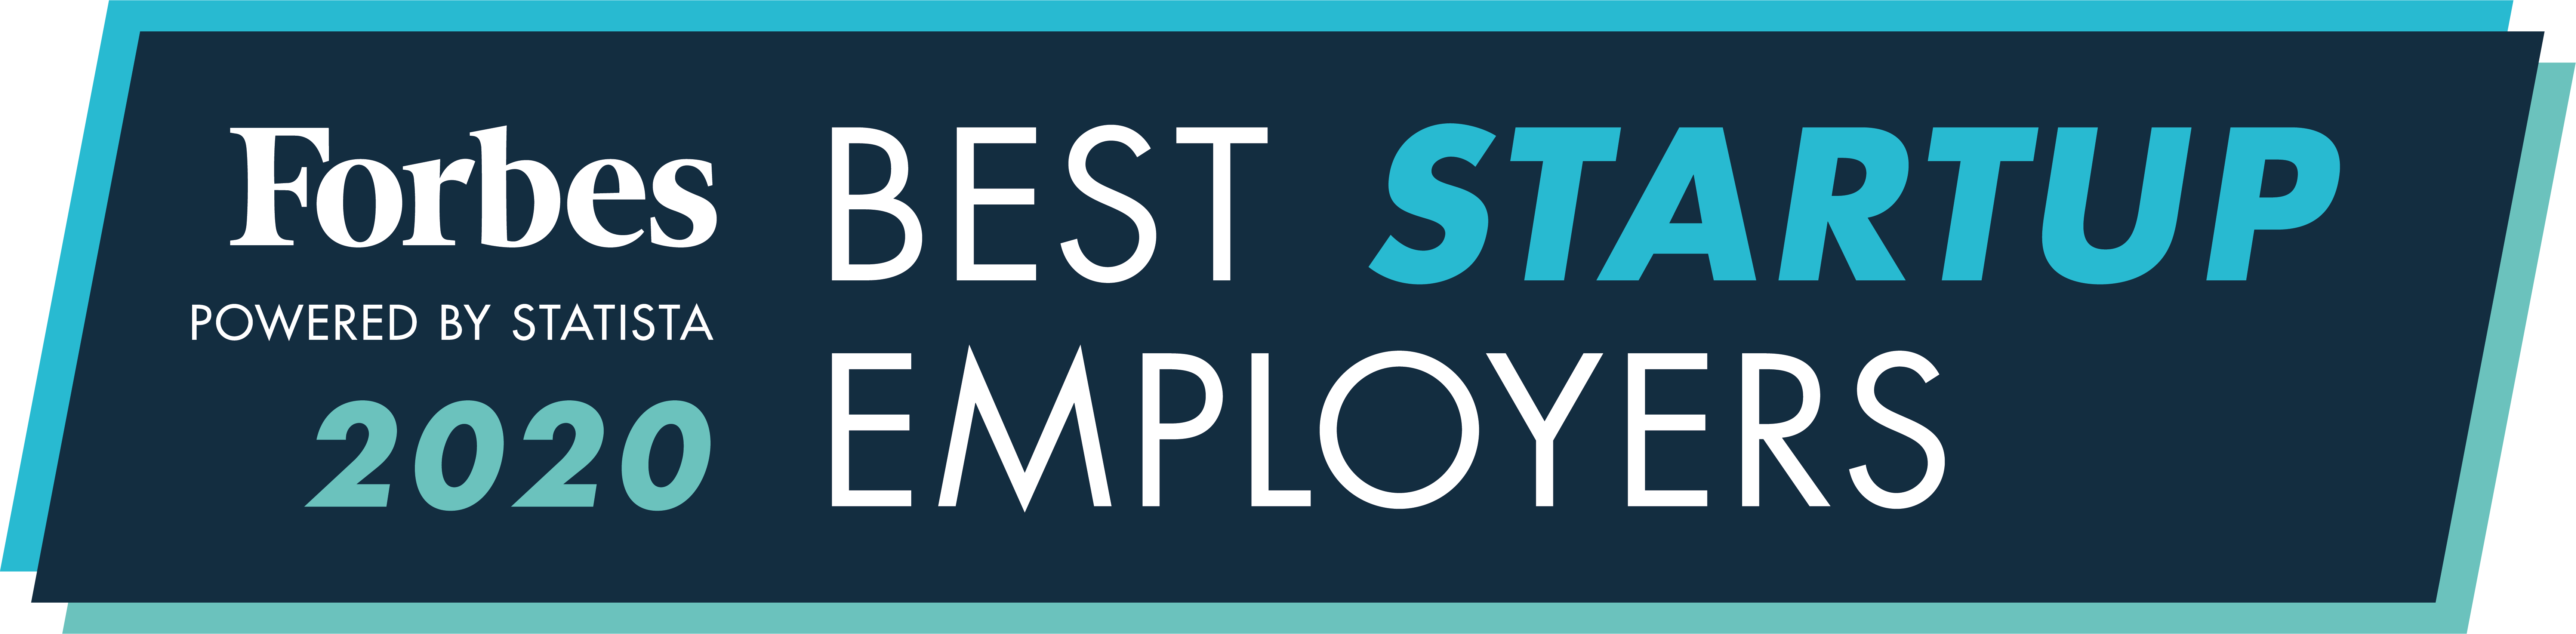 Forbes 2020 best startup employers badge